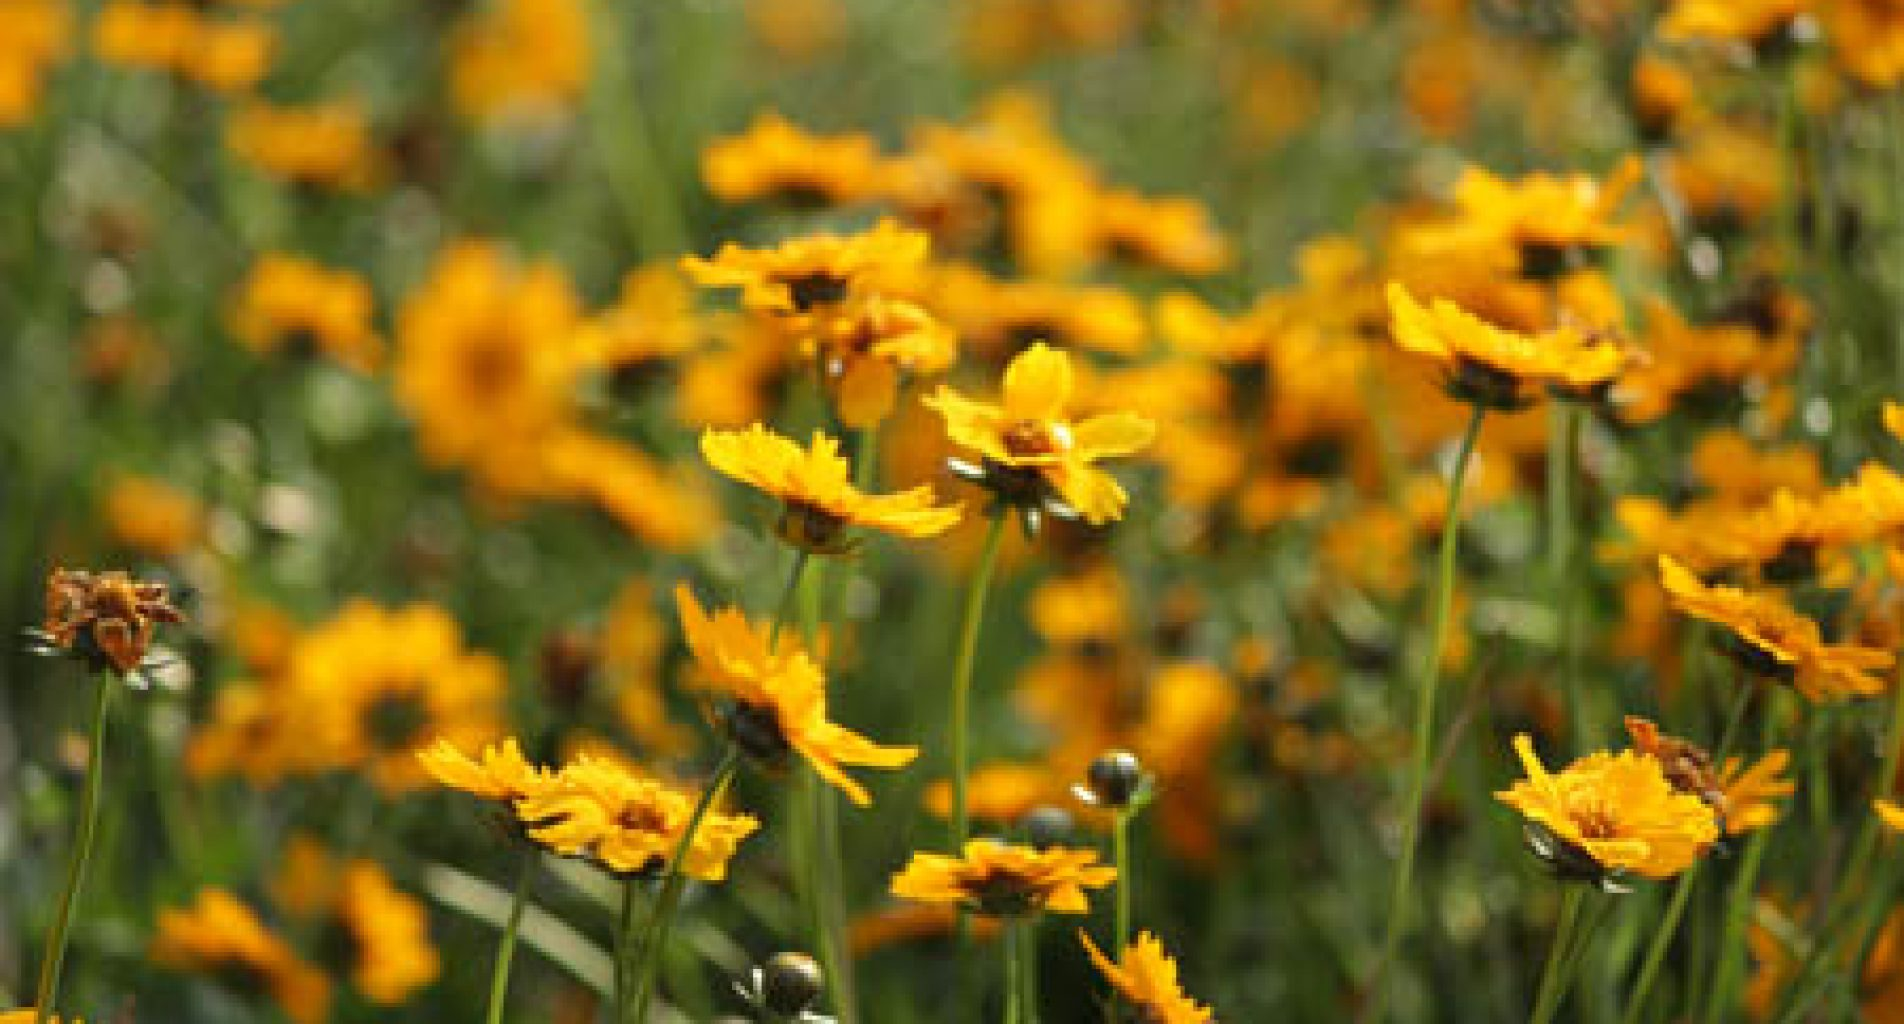 Coreopsis at Homestead Garden Center, WIilliamsburg